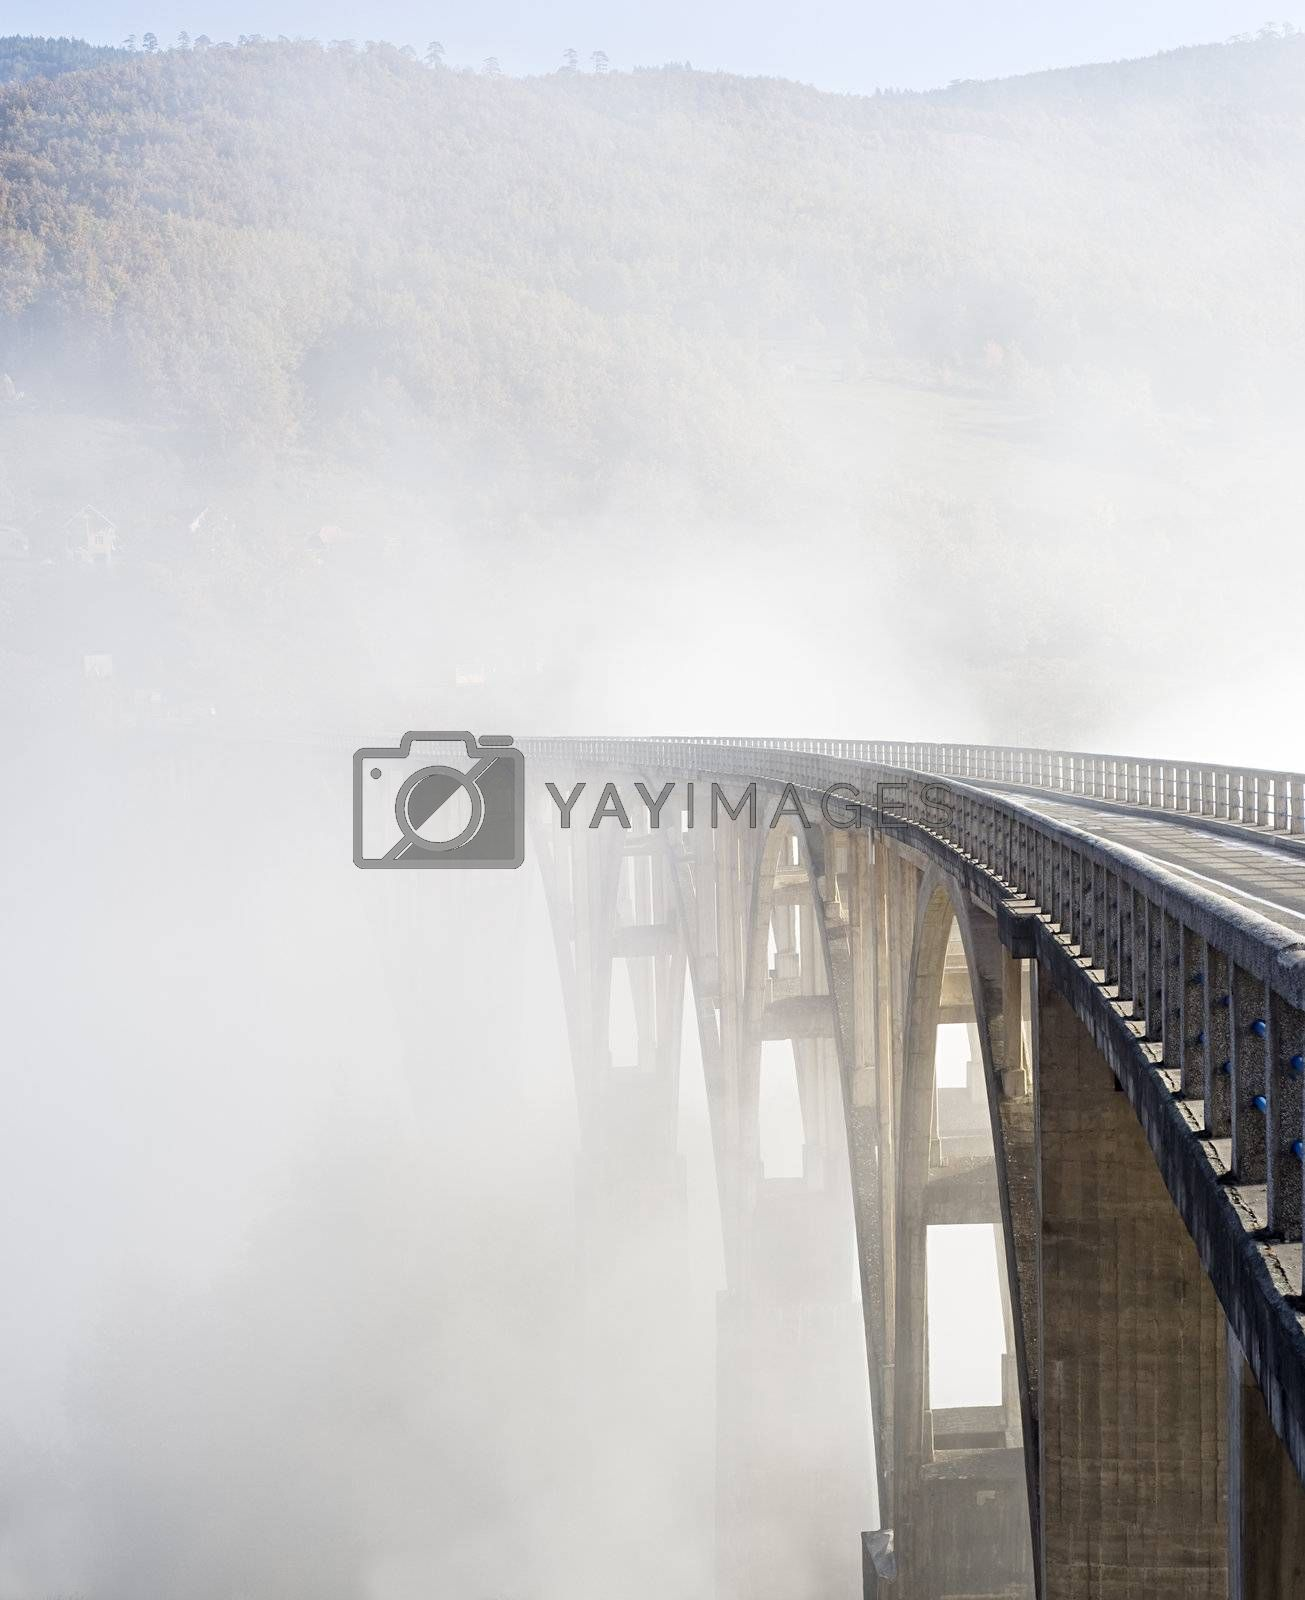 Djurdjevica Tara Bridge is a concrete arch bridge over the Tara River in northern Montenegro. It was built between 1937 and 1940, it's 365m long and the roadway stands 172 metres above the river.